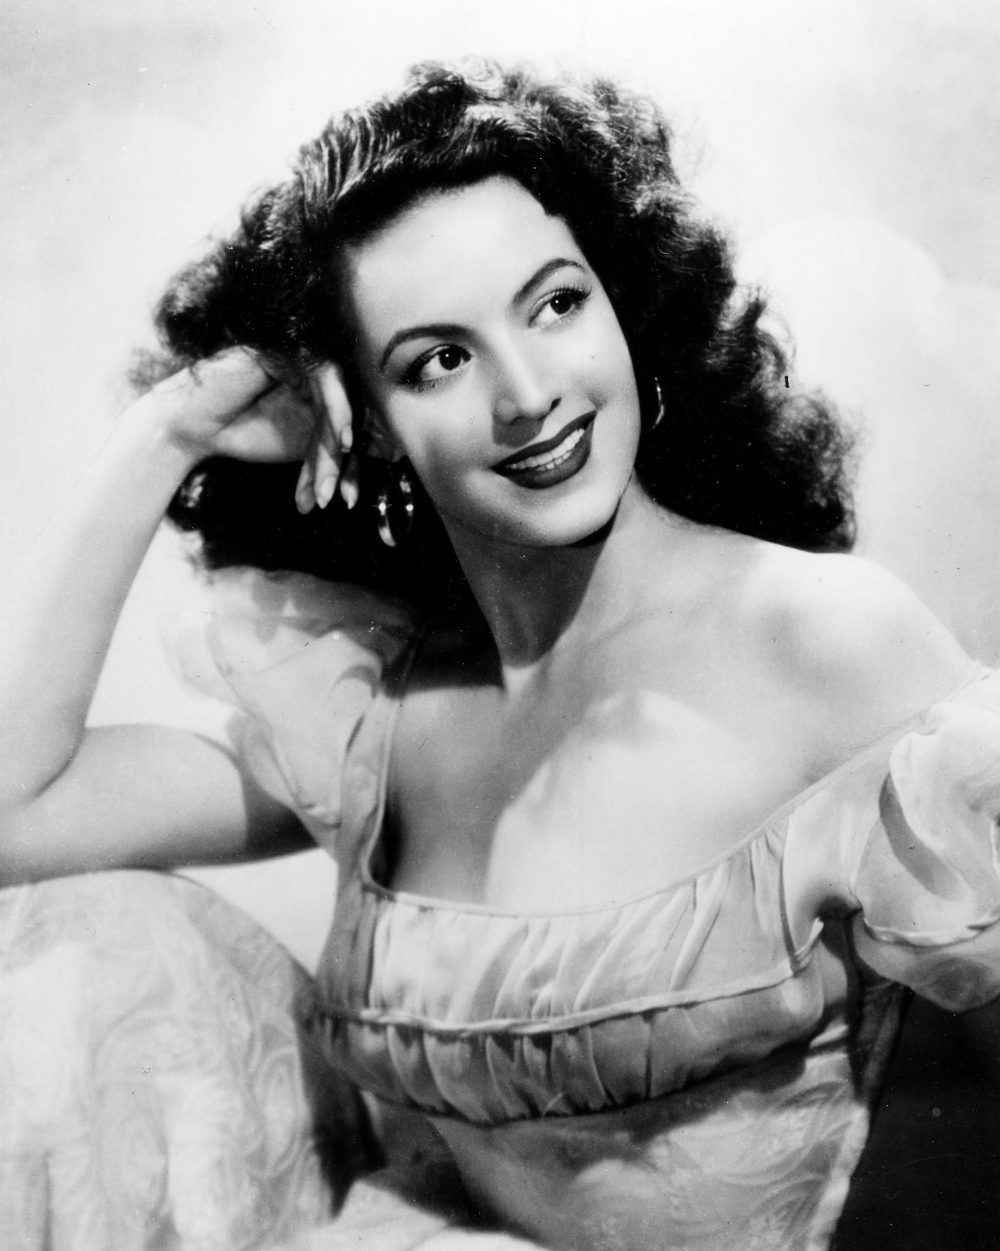 archival photograph of Maria Felix from the coleccion Filmoteca UNAM